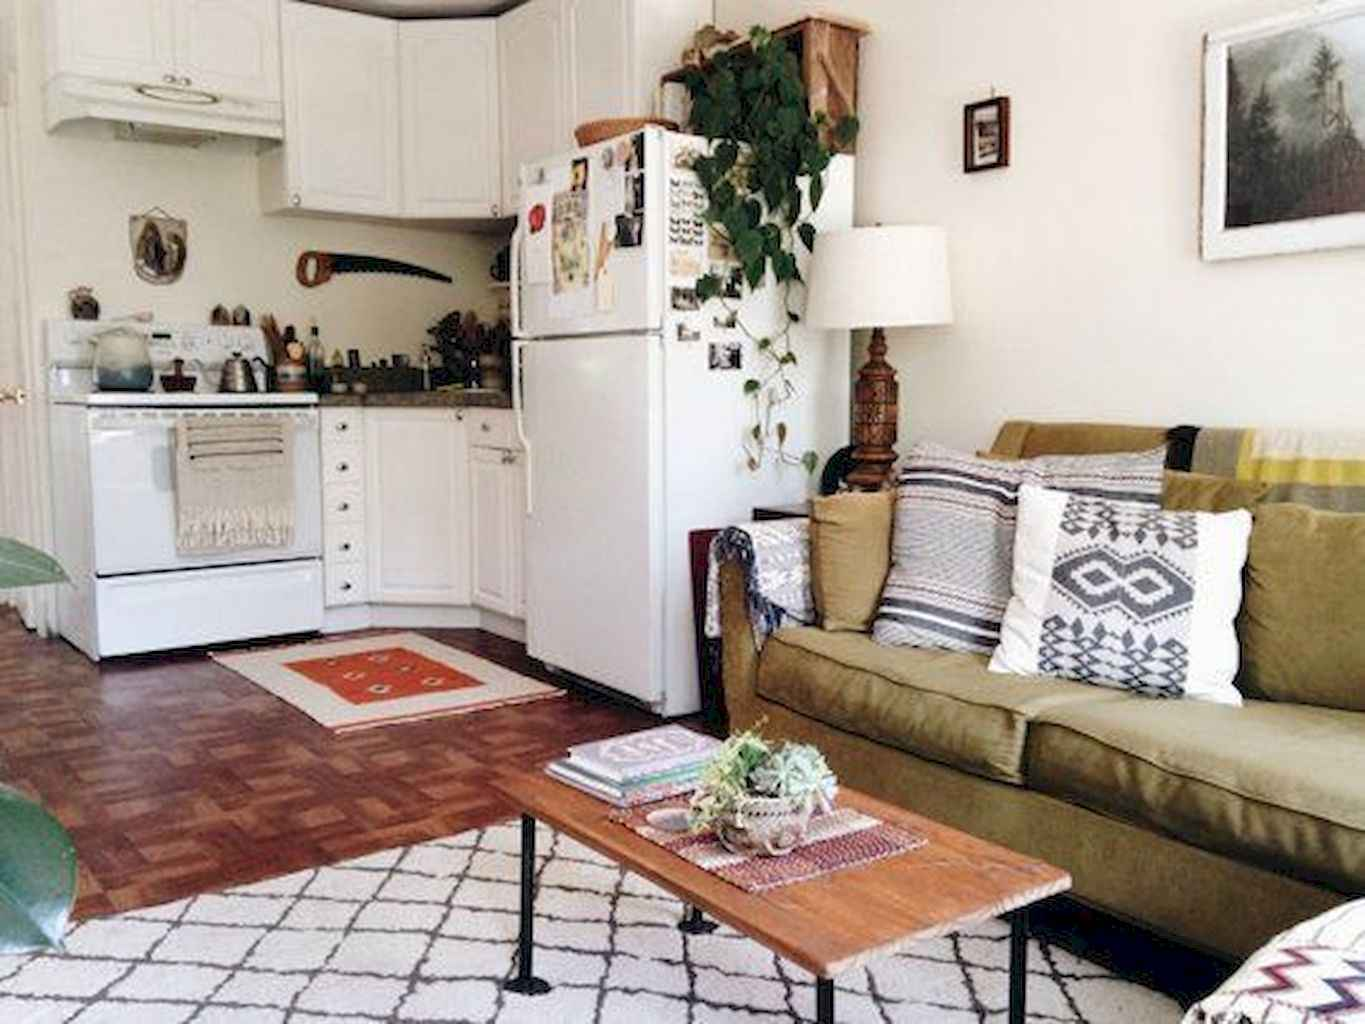 Cozy apartment decorating ideas on a budget (65)